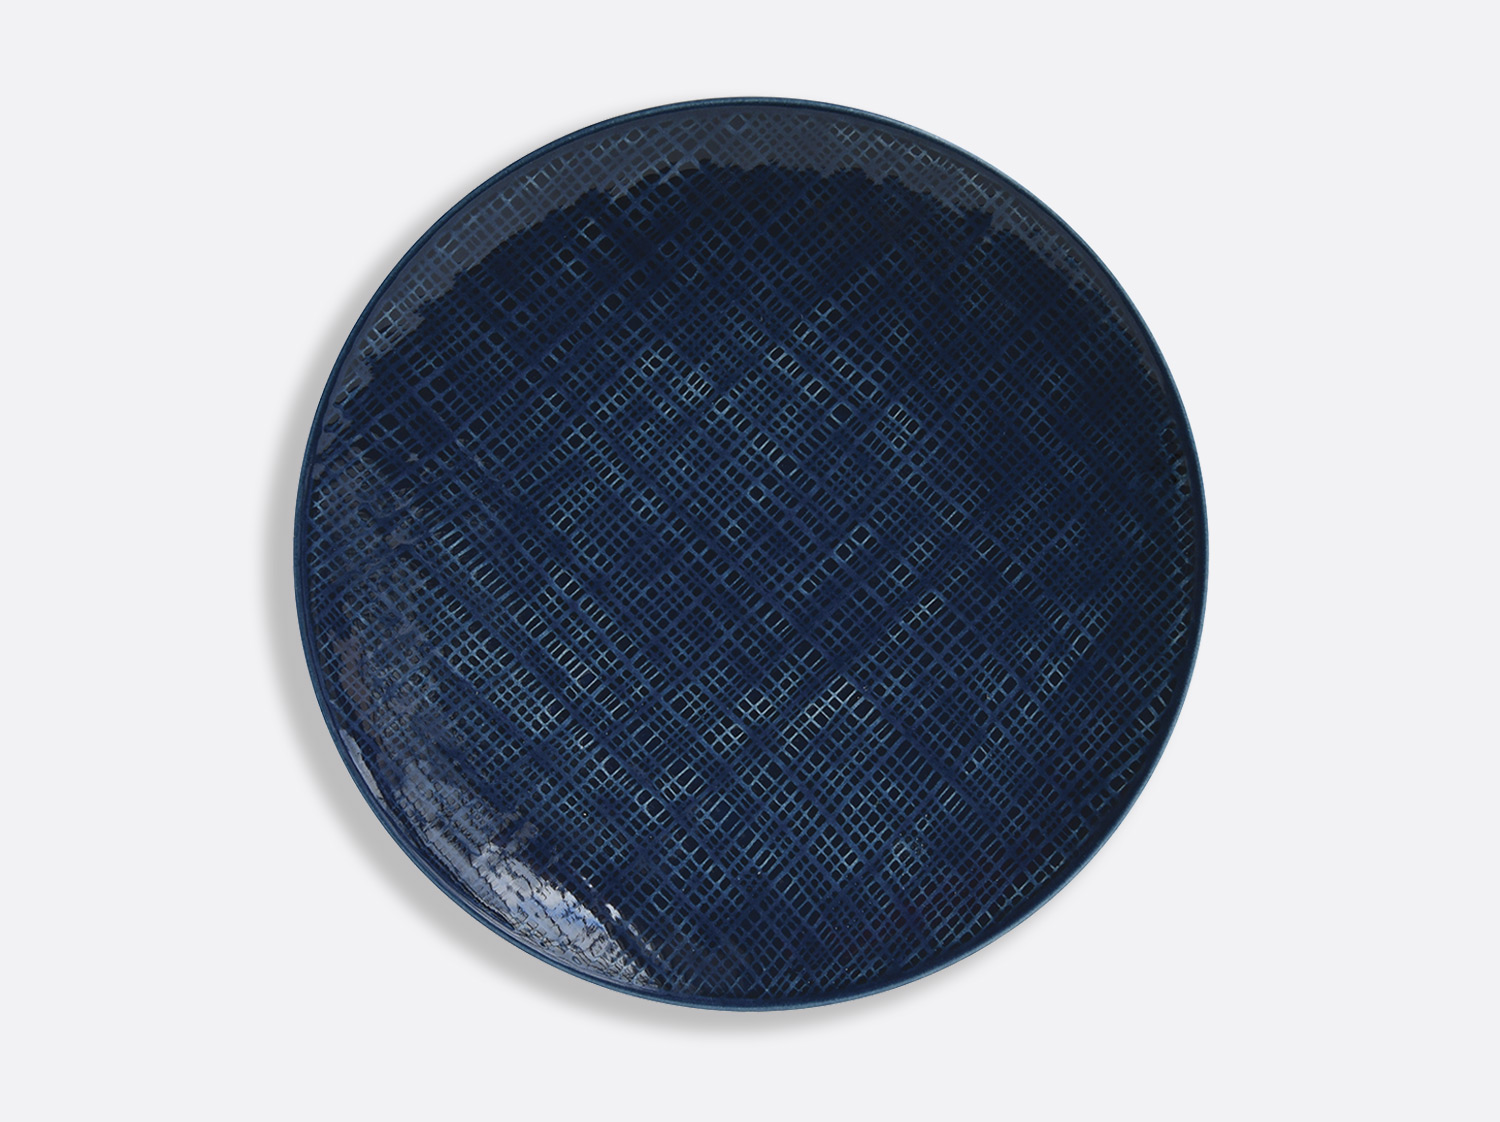 China Bleu Jean plate 29.5 cm of the collection ORGANZA BLEU JEANS | Bernardaud